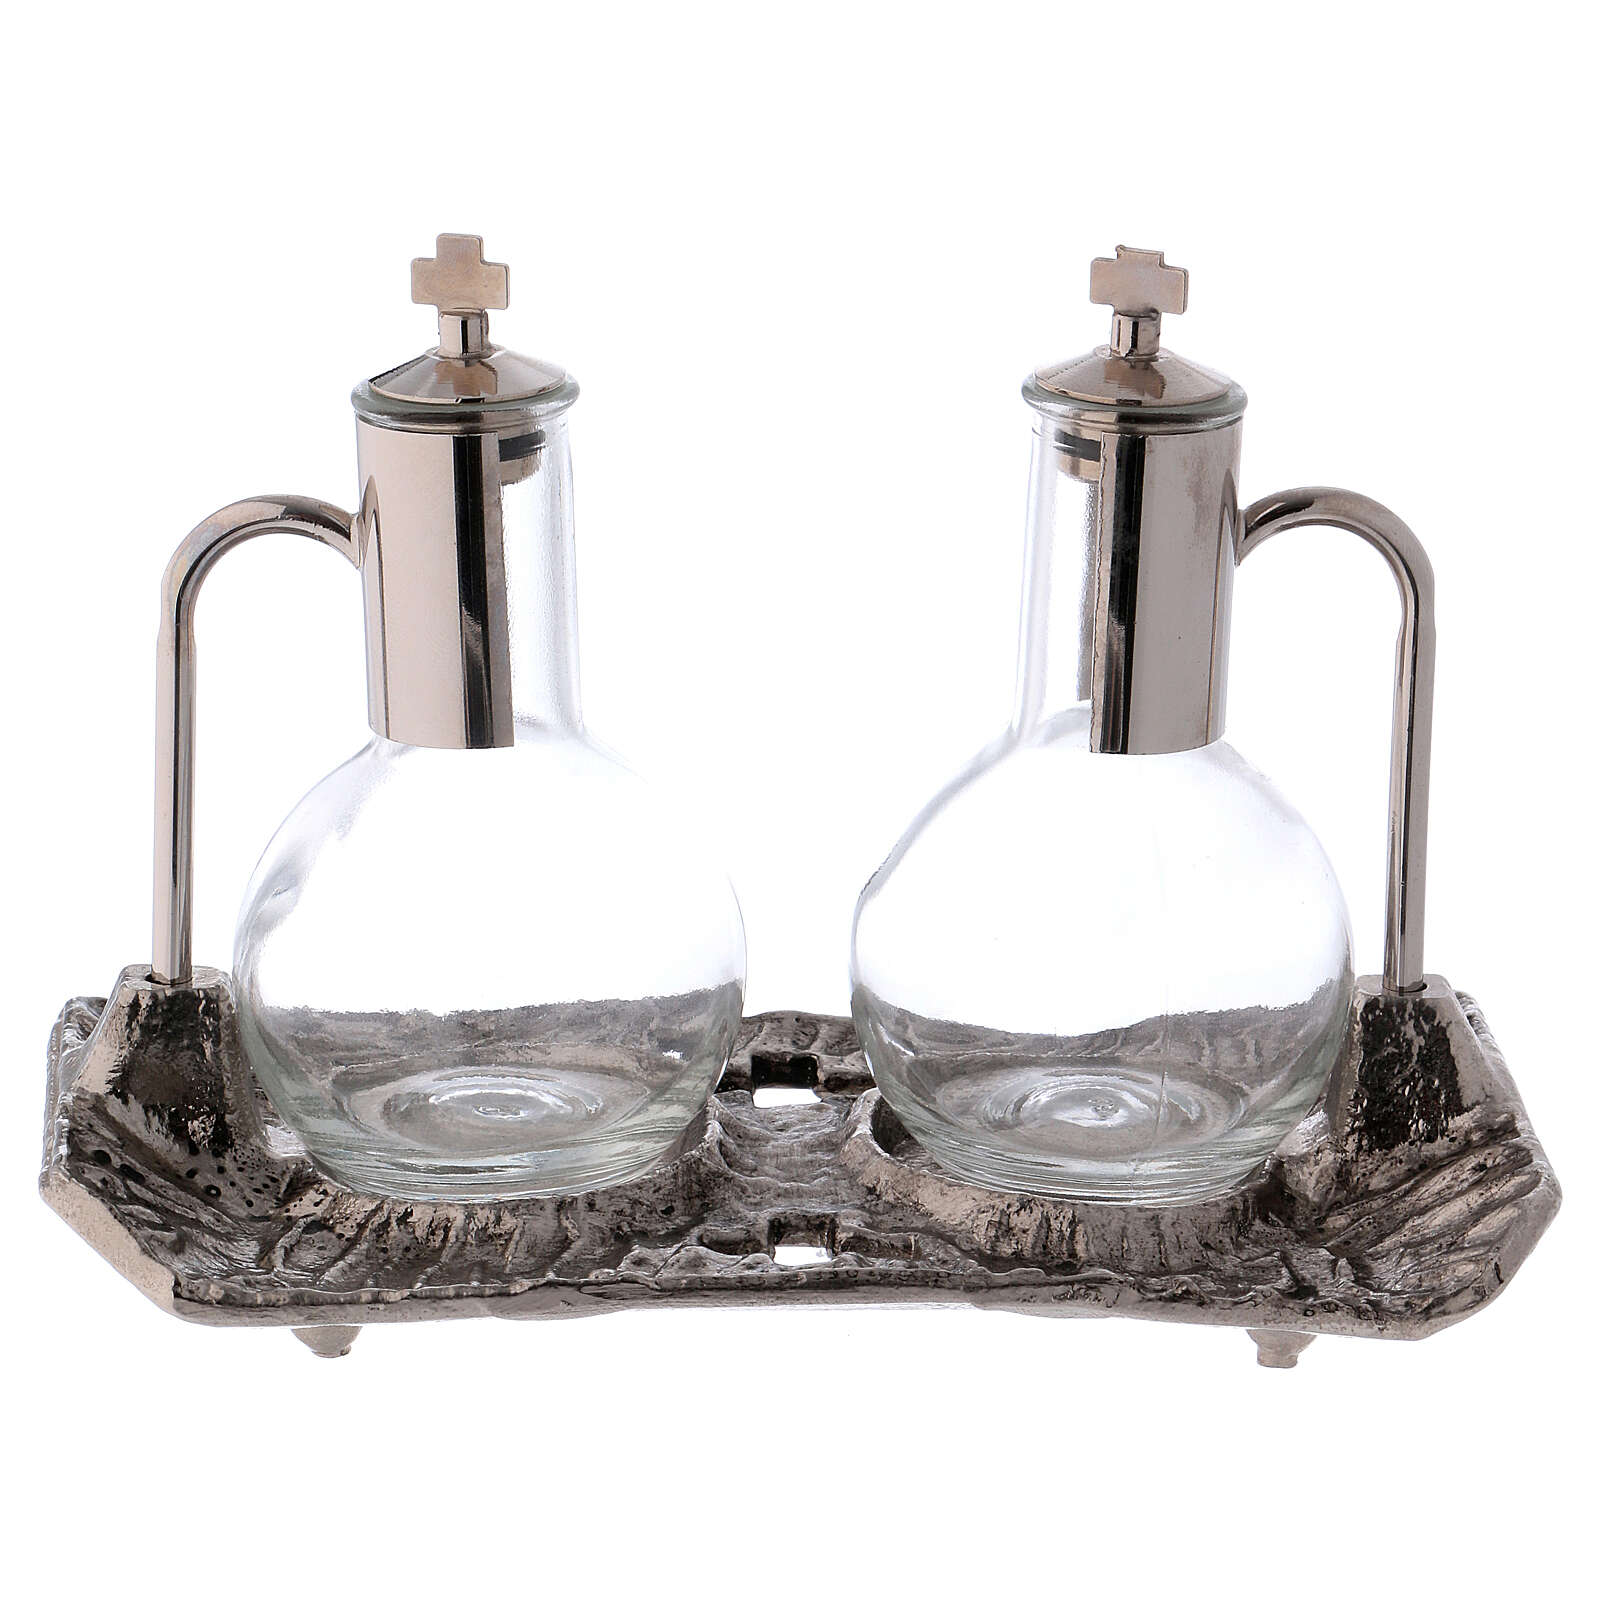 Cruet set with melted cast nickel tray 4